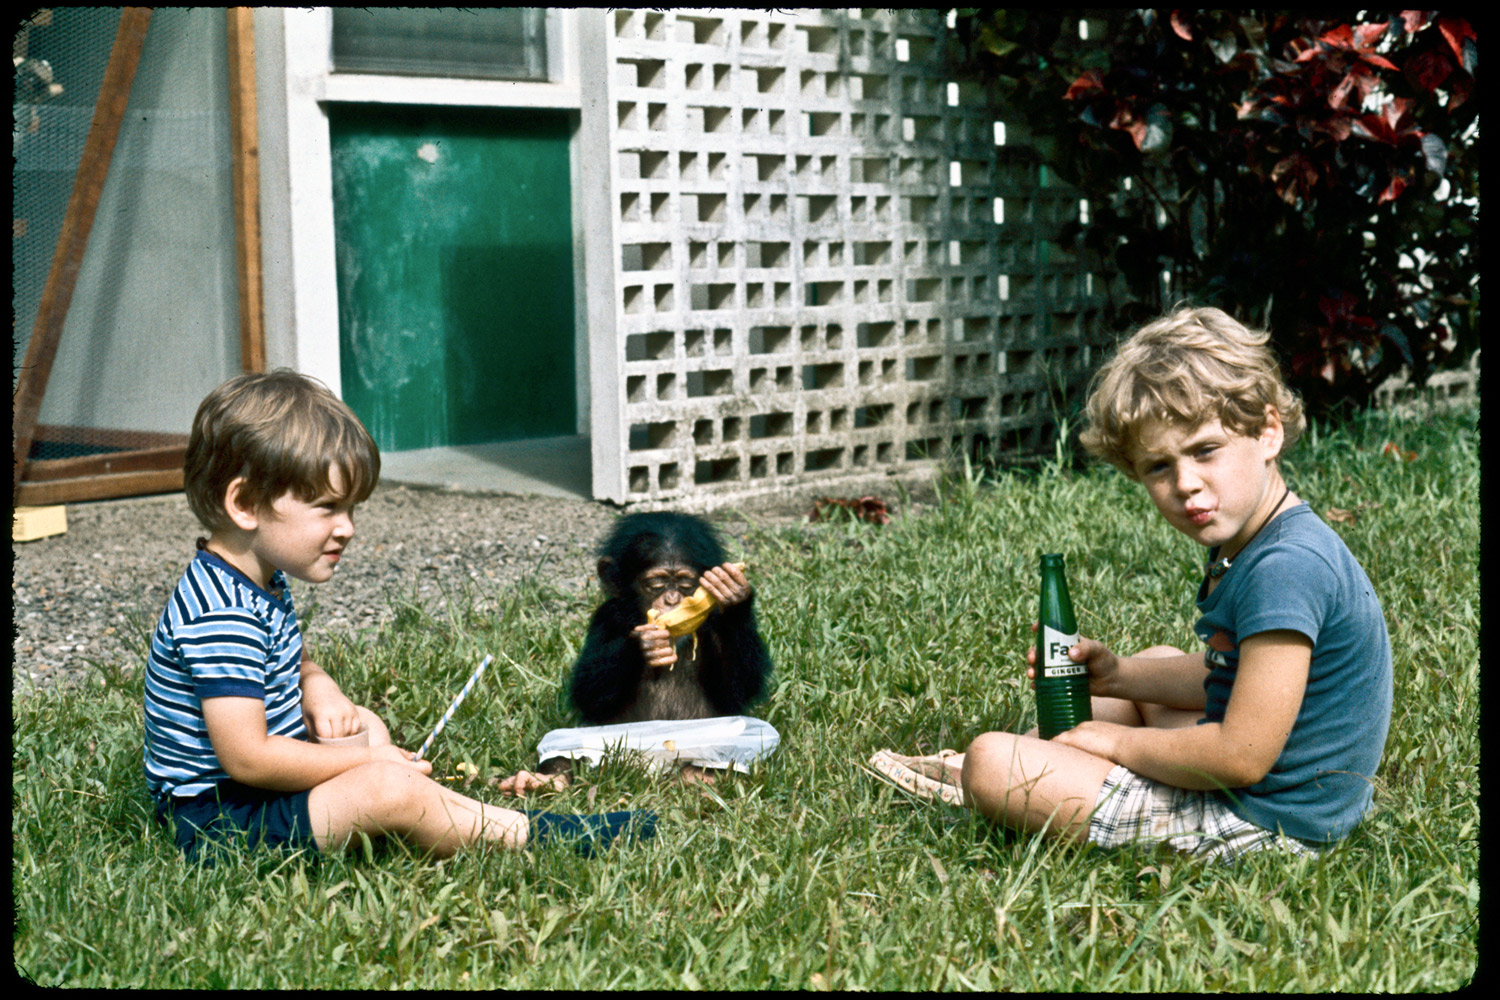 (L-R) Andrew, Evelyn and Jeff in the front yard enjoying snacks. Exchem Compound, 1977.